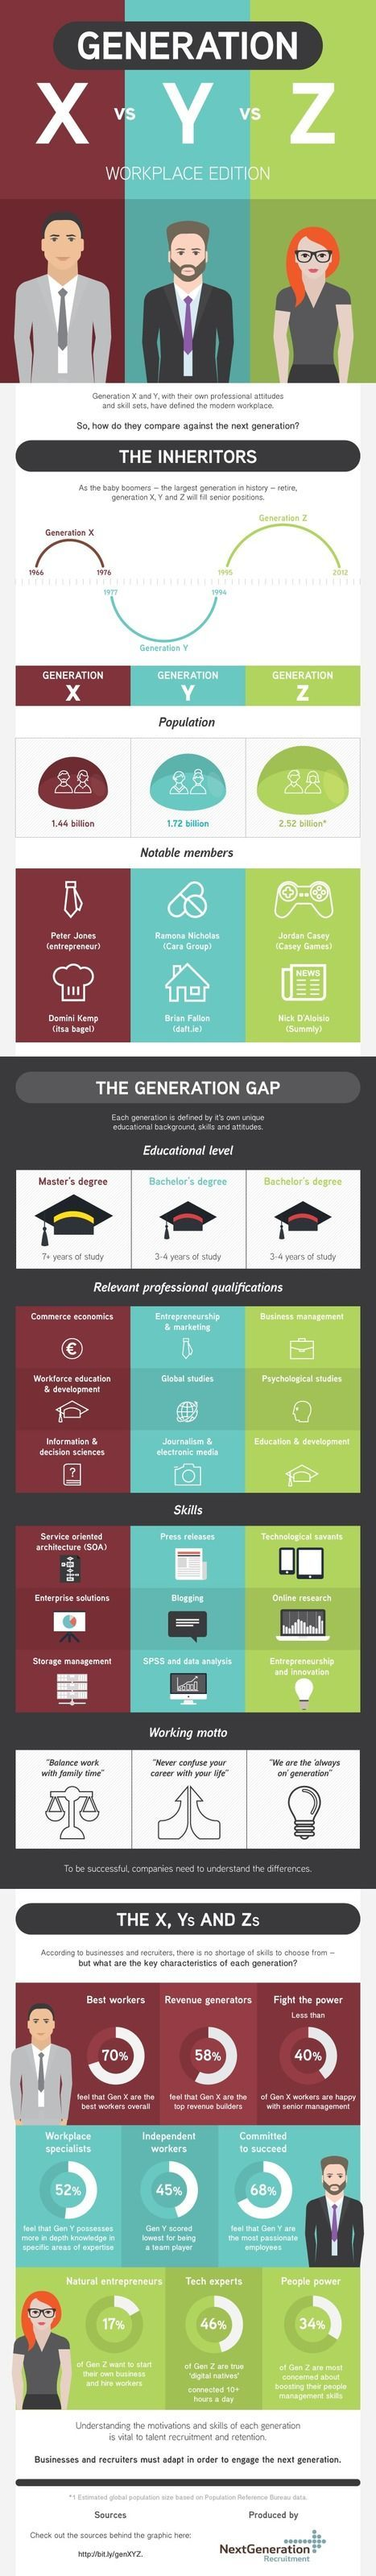 Generation X vs Y vs Z #Workplace (#Infographic) | Digital Learning, Knowledge Evolution and Future of Working | Scoop.it